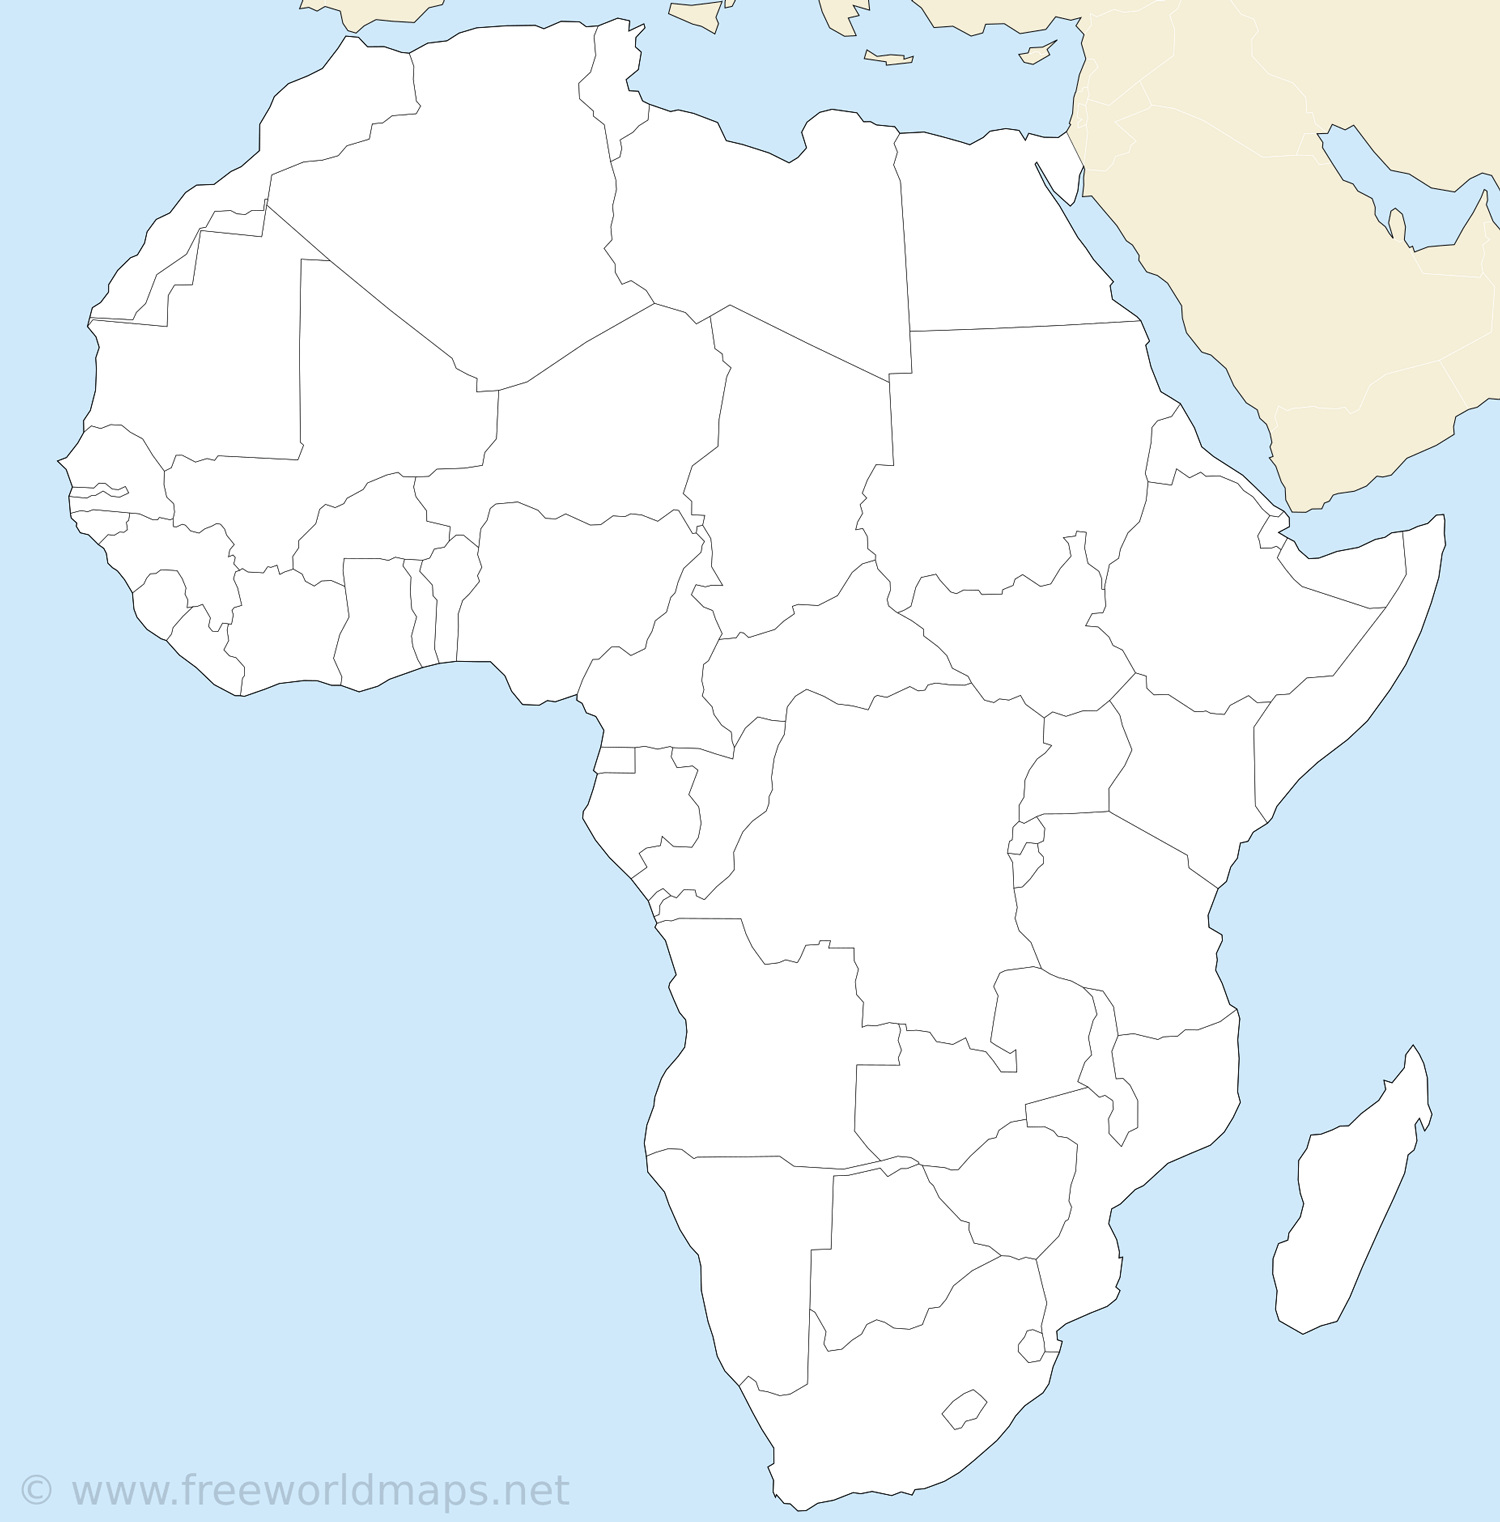 Africa Printable Maps By Freeworldmaps